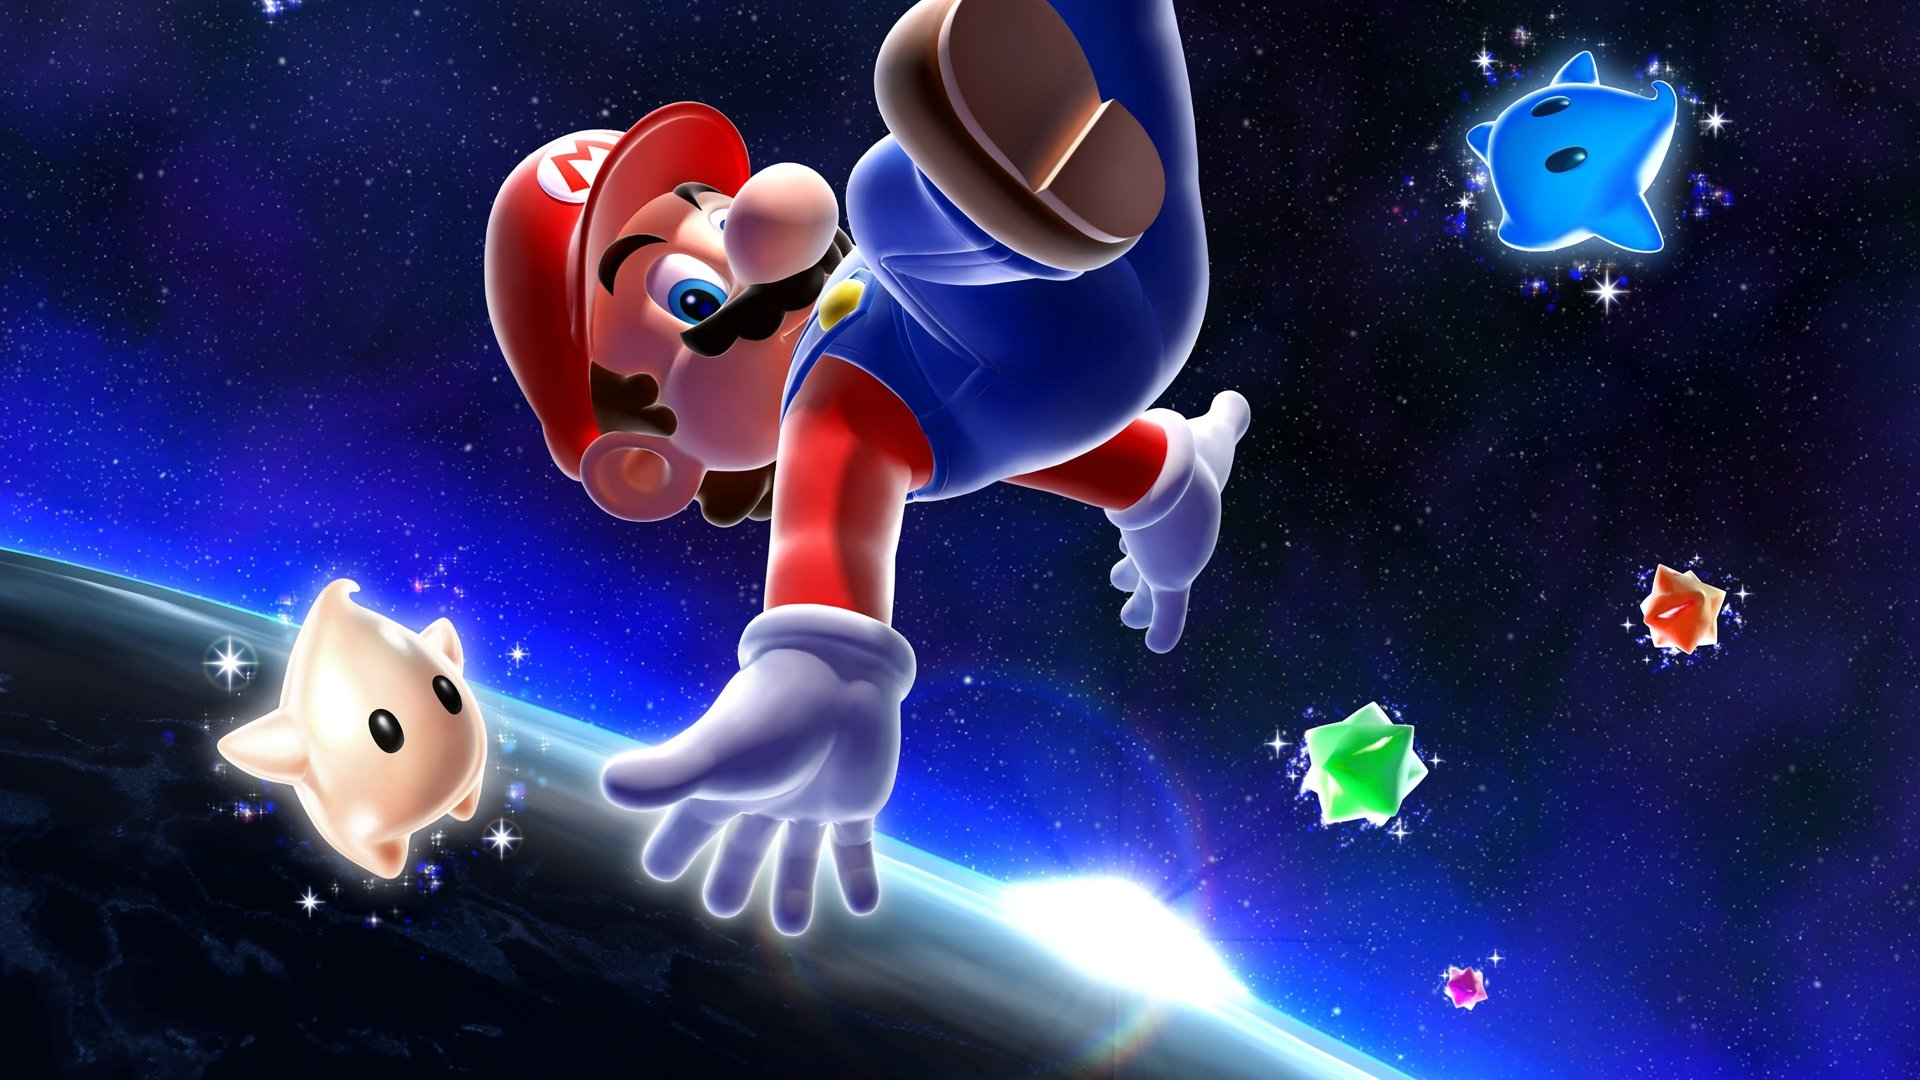 Super Mario Galaxy Wallpapers 1920x1080 Full Hd 1080p